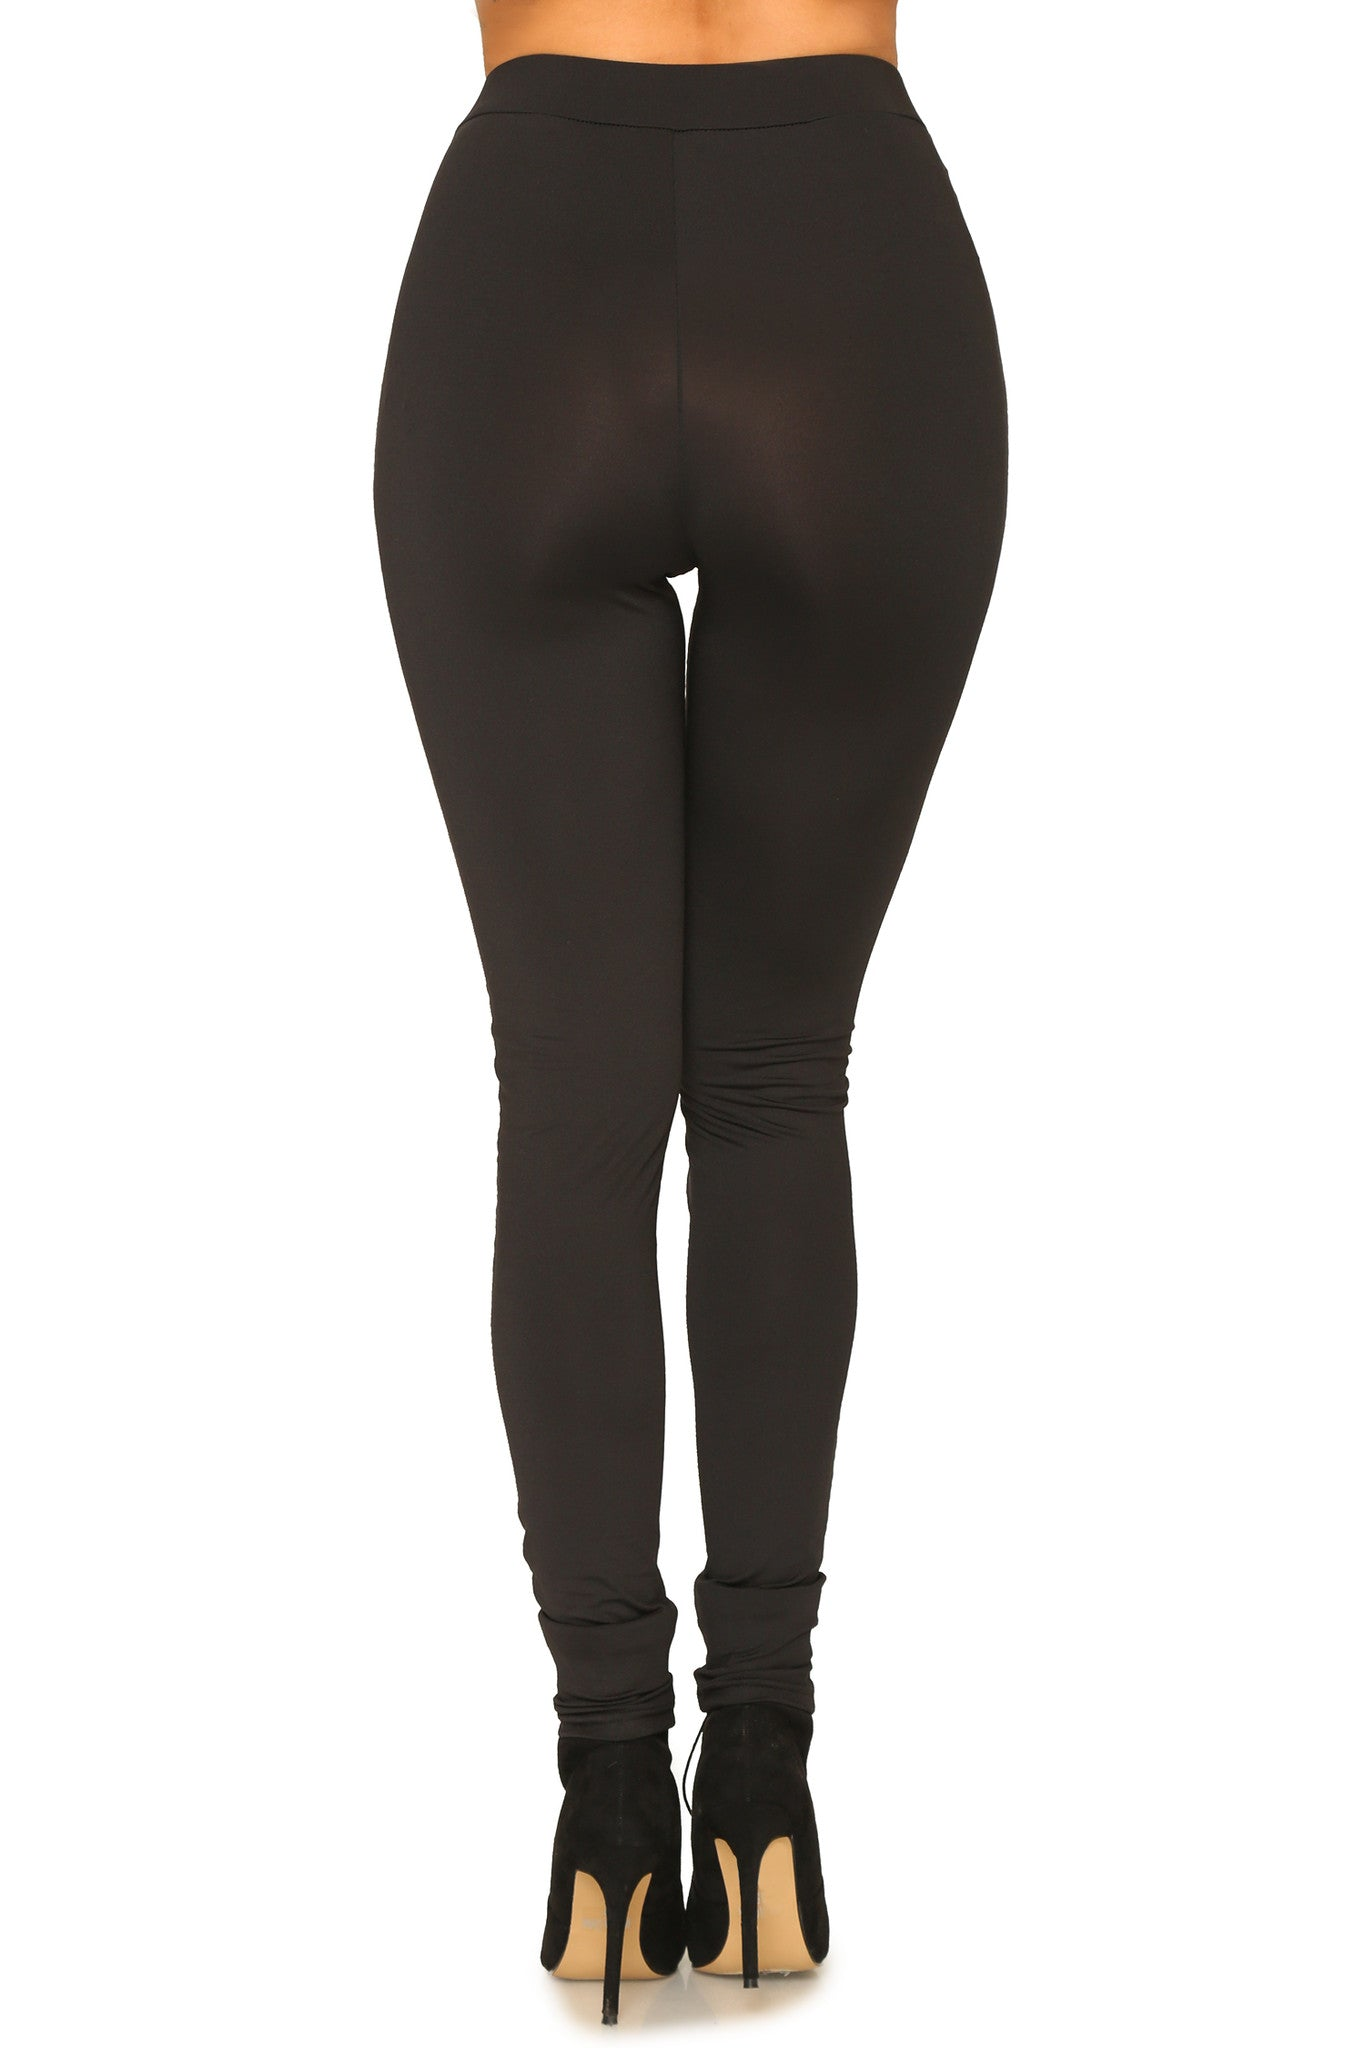 LACE ME UP LEGGINGS - Glam Envy - 3